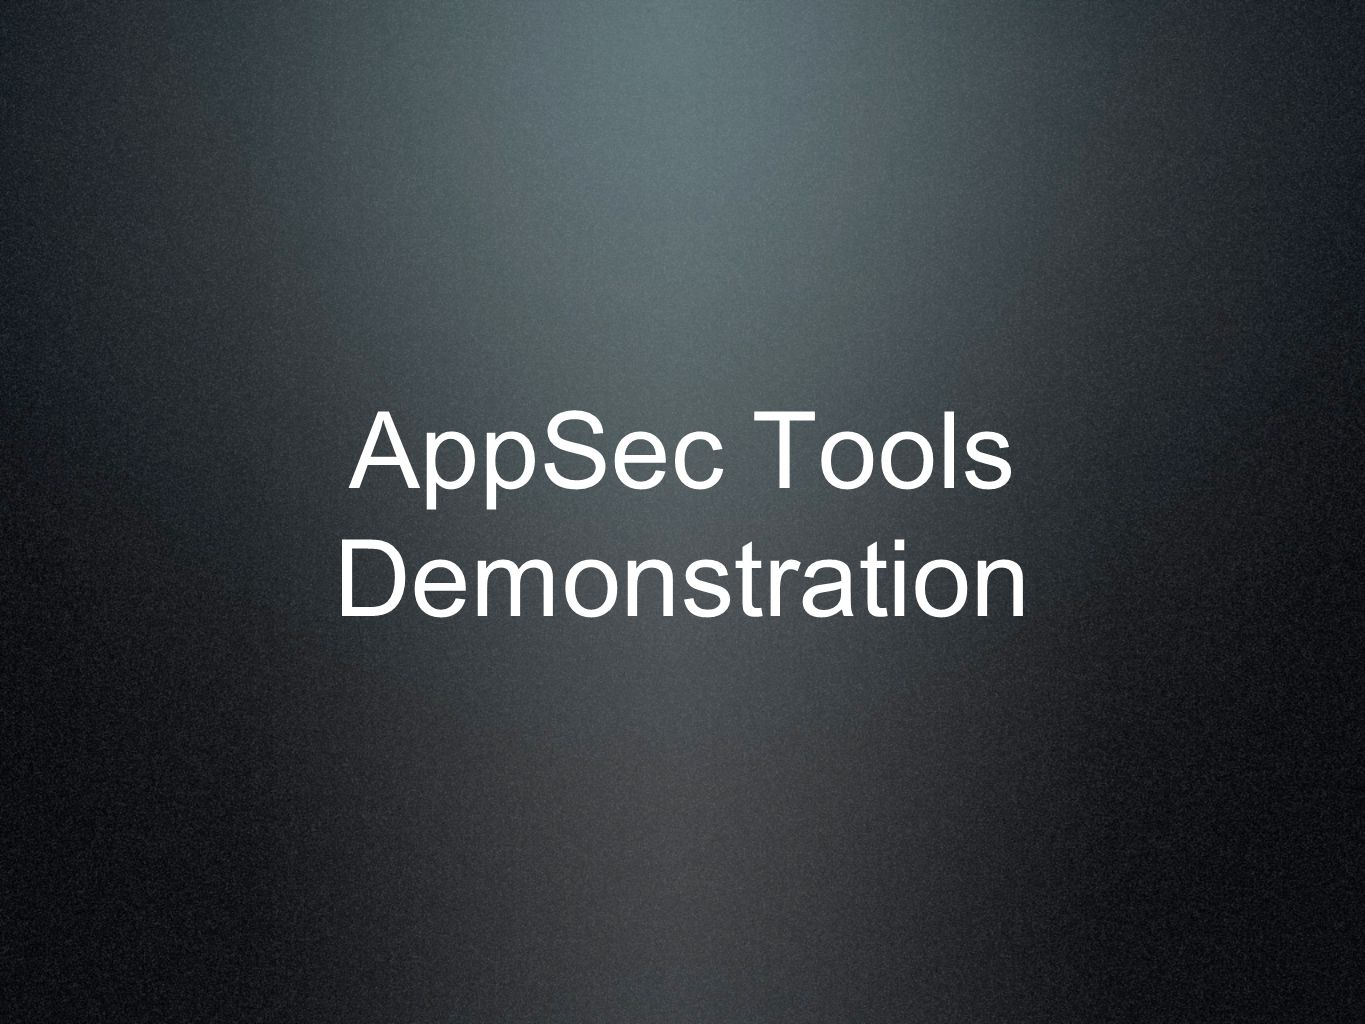 AppSec Tools Demonstration